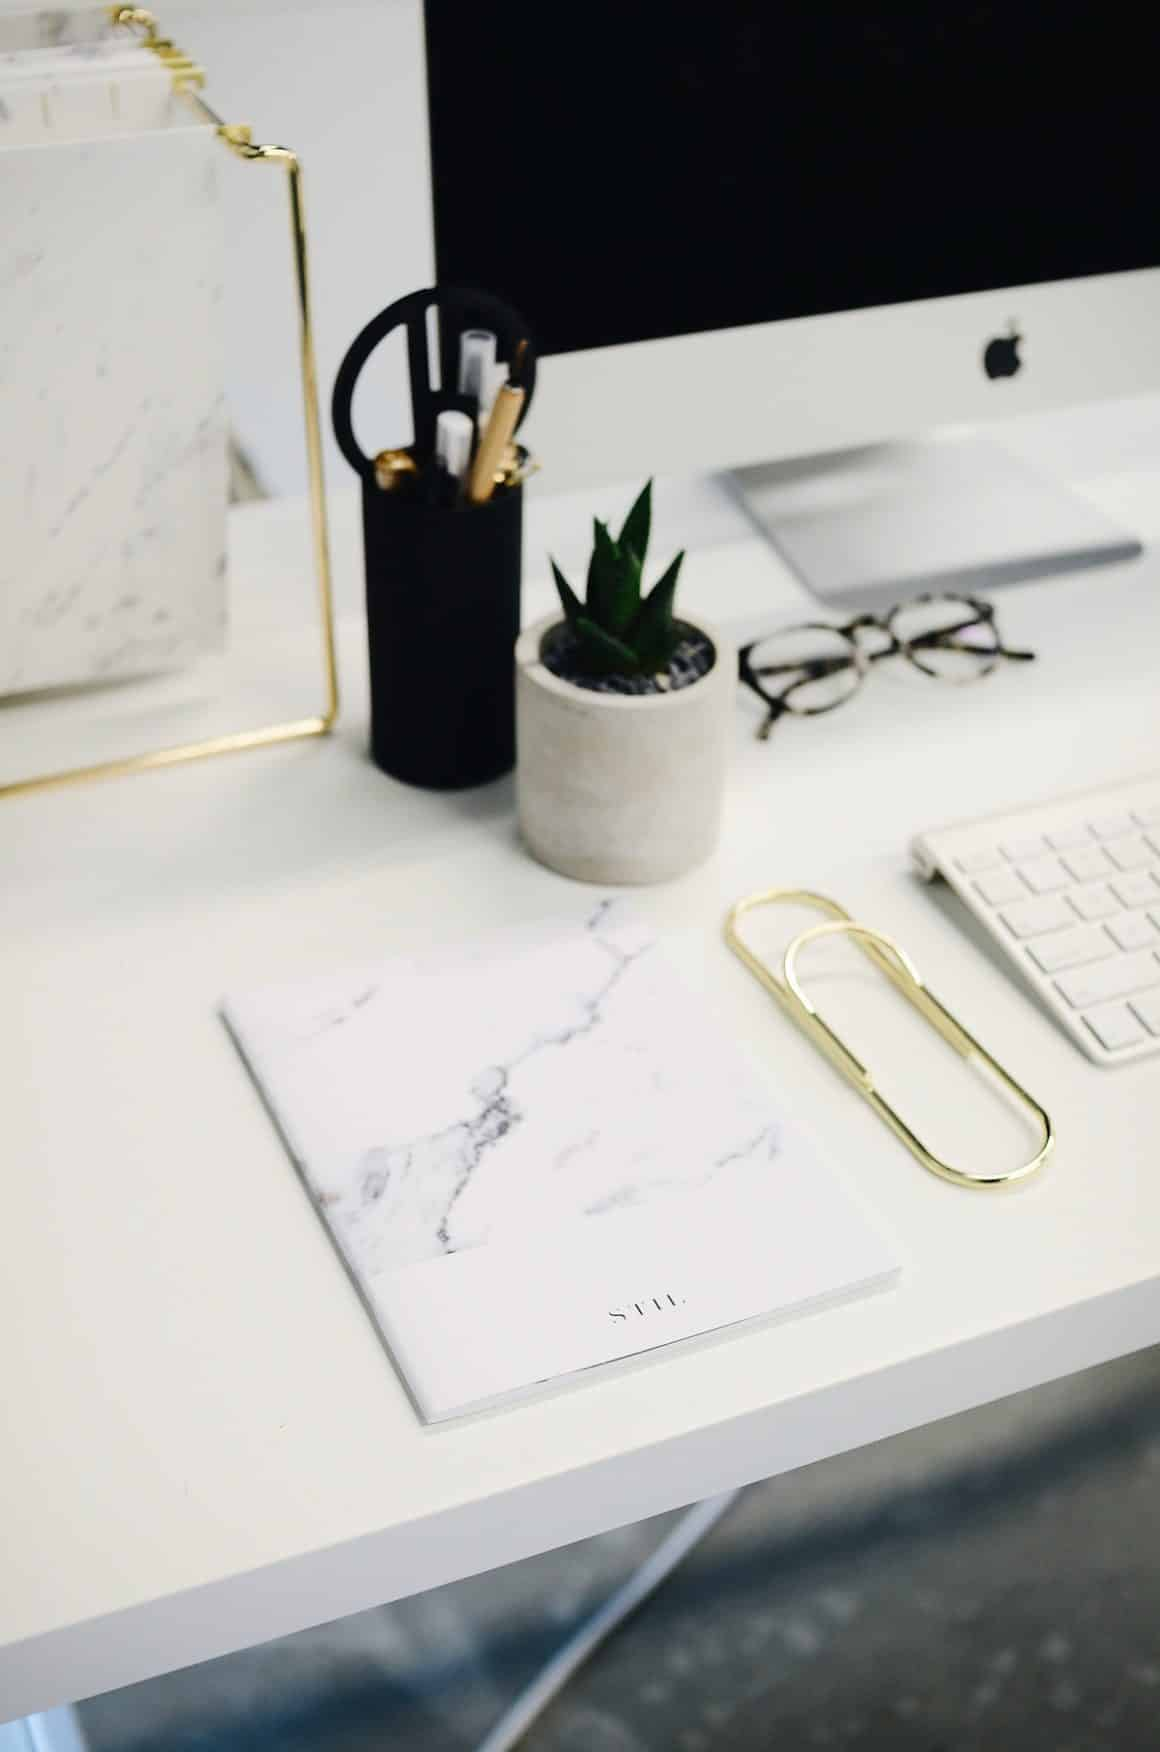 Creating a Safe Office Environment During COVID-19 - The Healthy Voyager